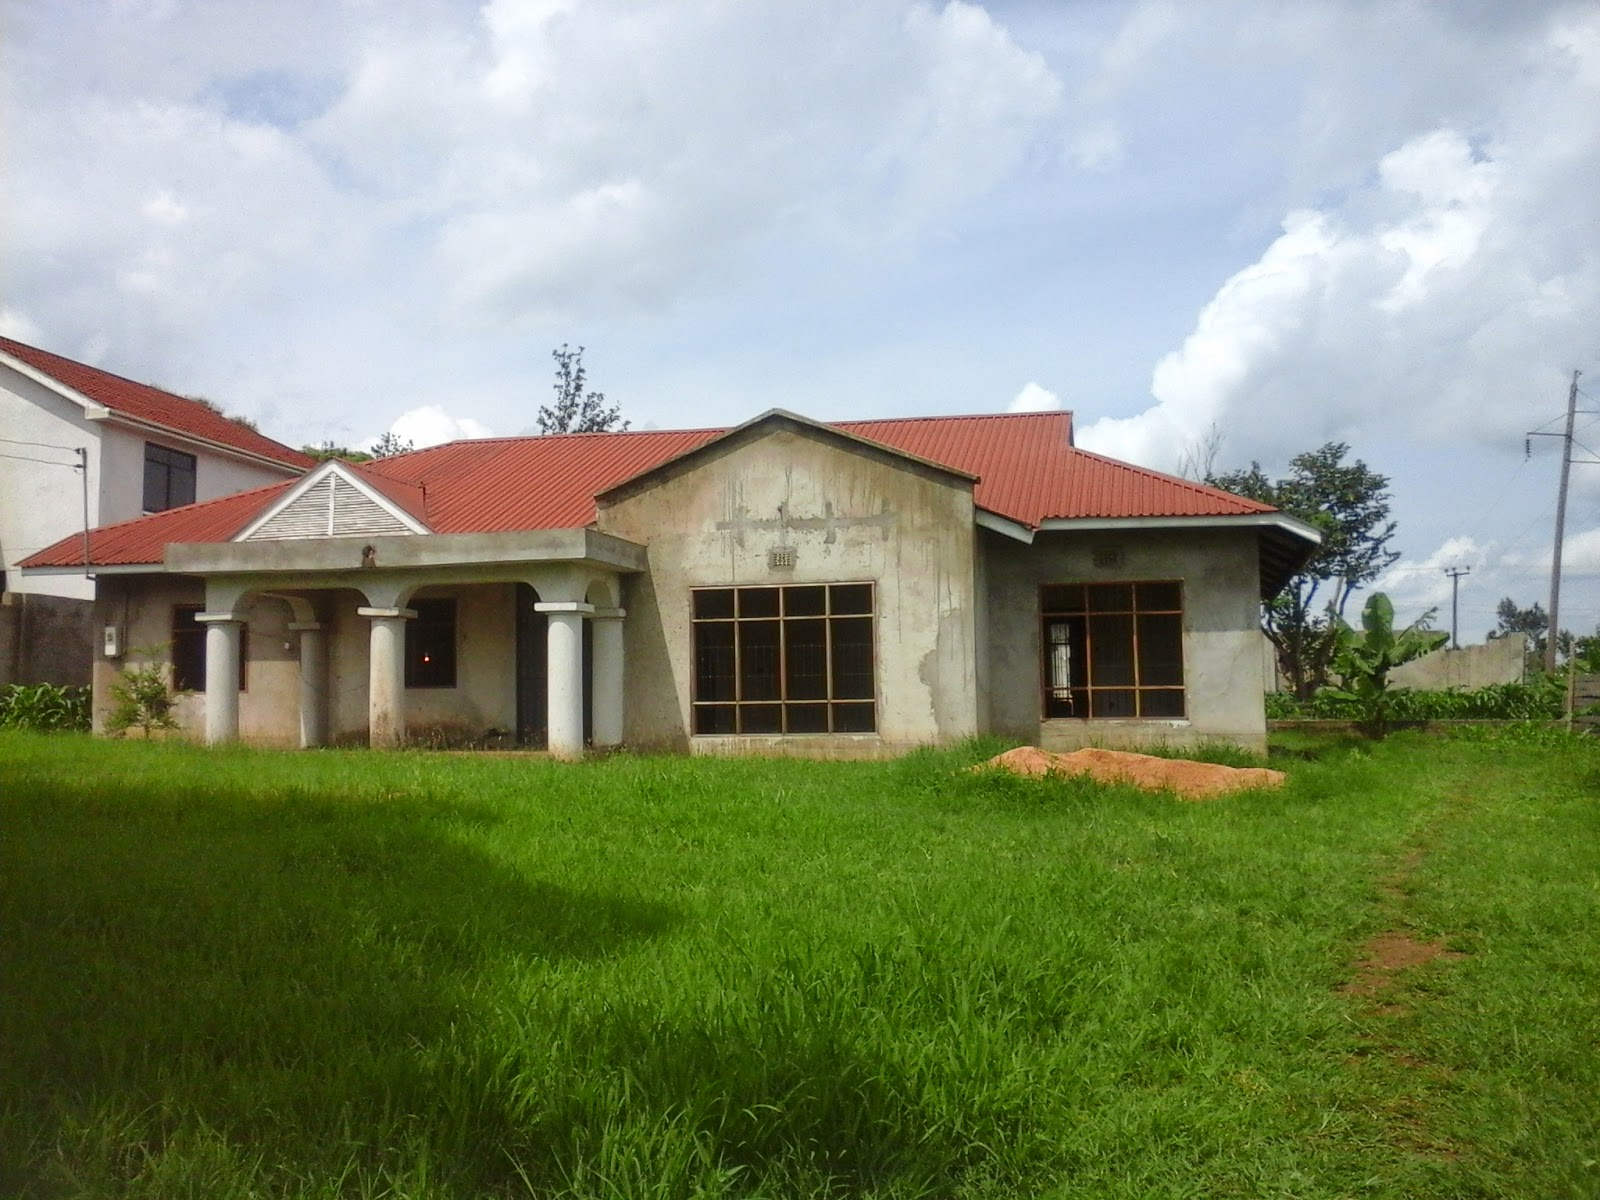 Rent House In Tanzania Arusha Rent Houses Houses For Sale House For Sale Njiro Block C Arusha